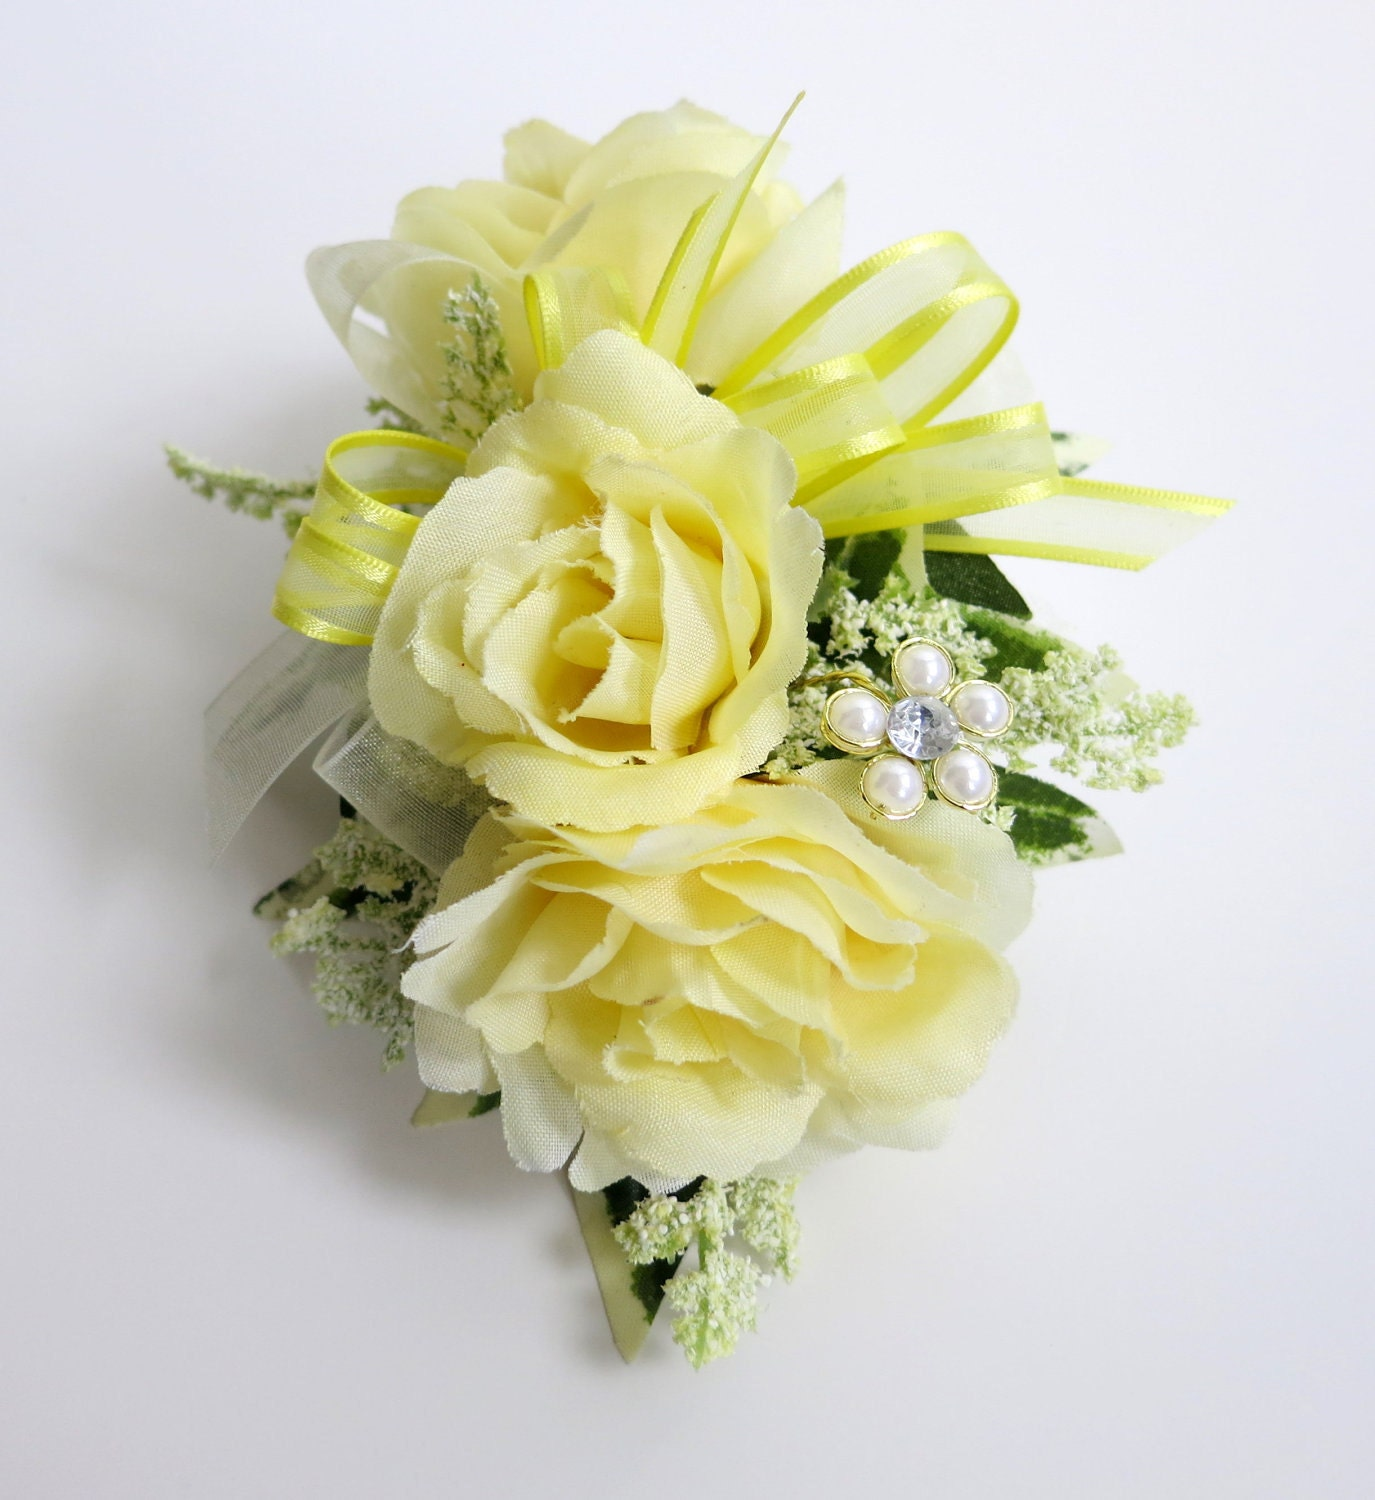 Wedding Corsage: RESERVED For Brandi Faux Corsage Wedding Corsage